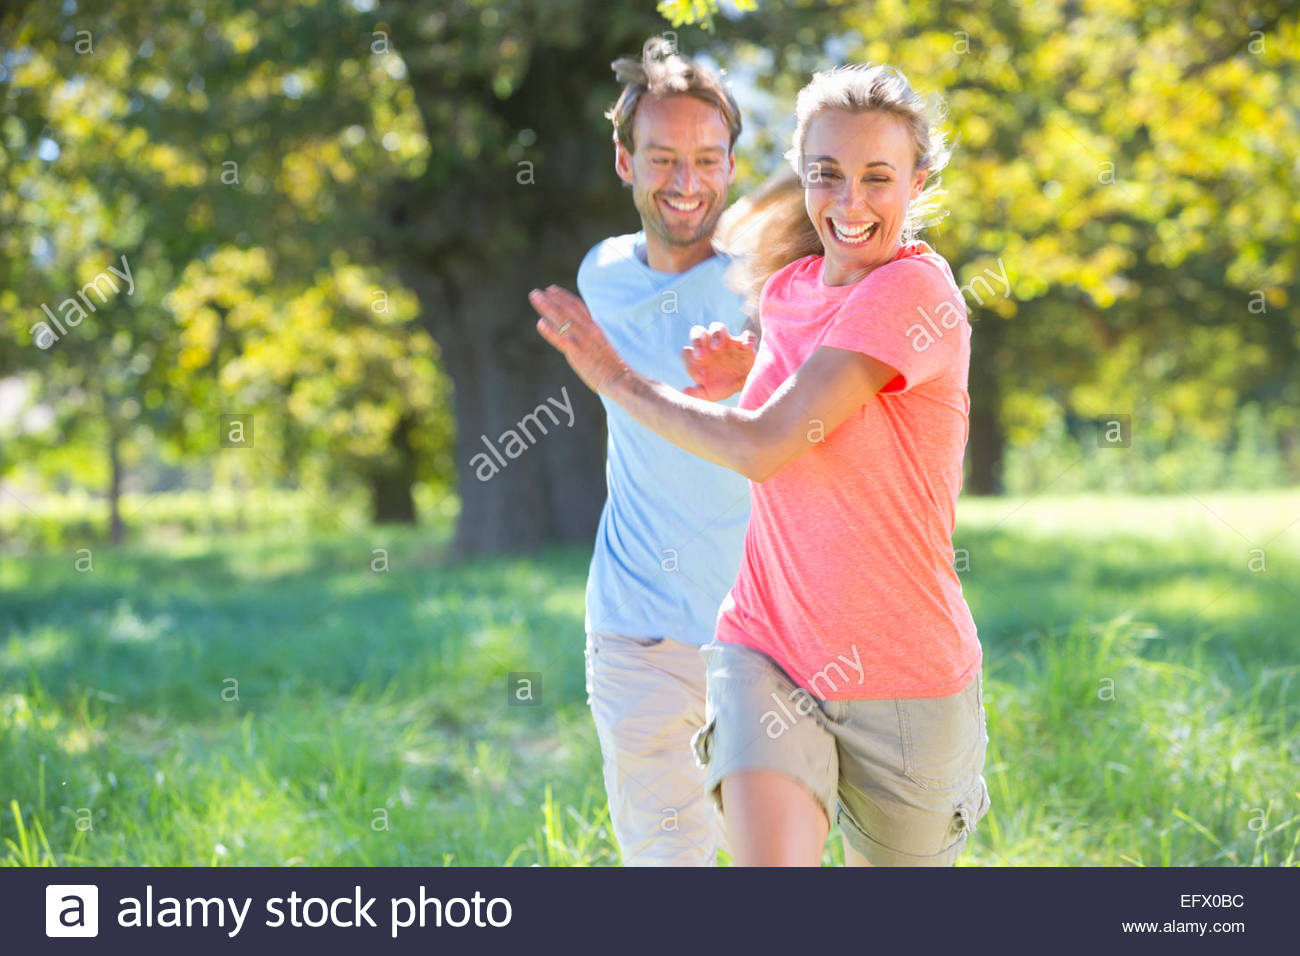 Couple, playfully chasing each other, in treelined field - Stock Image